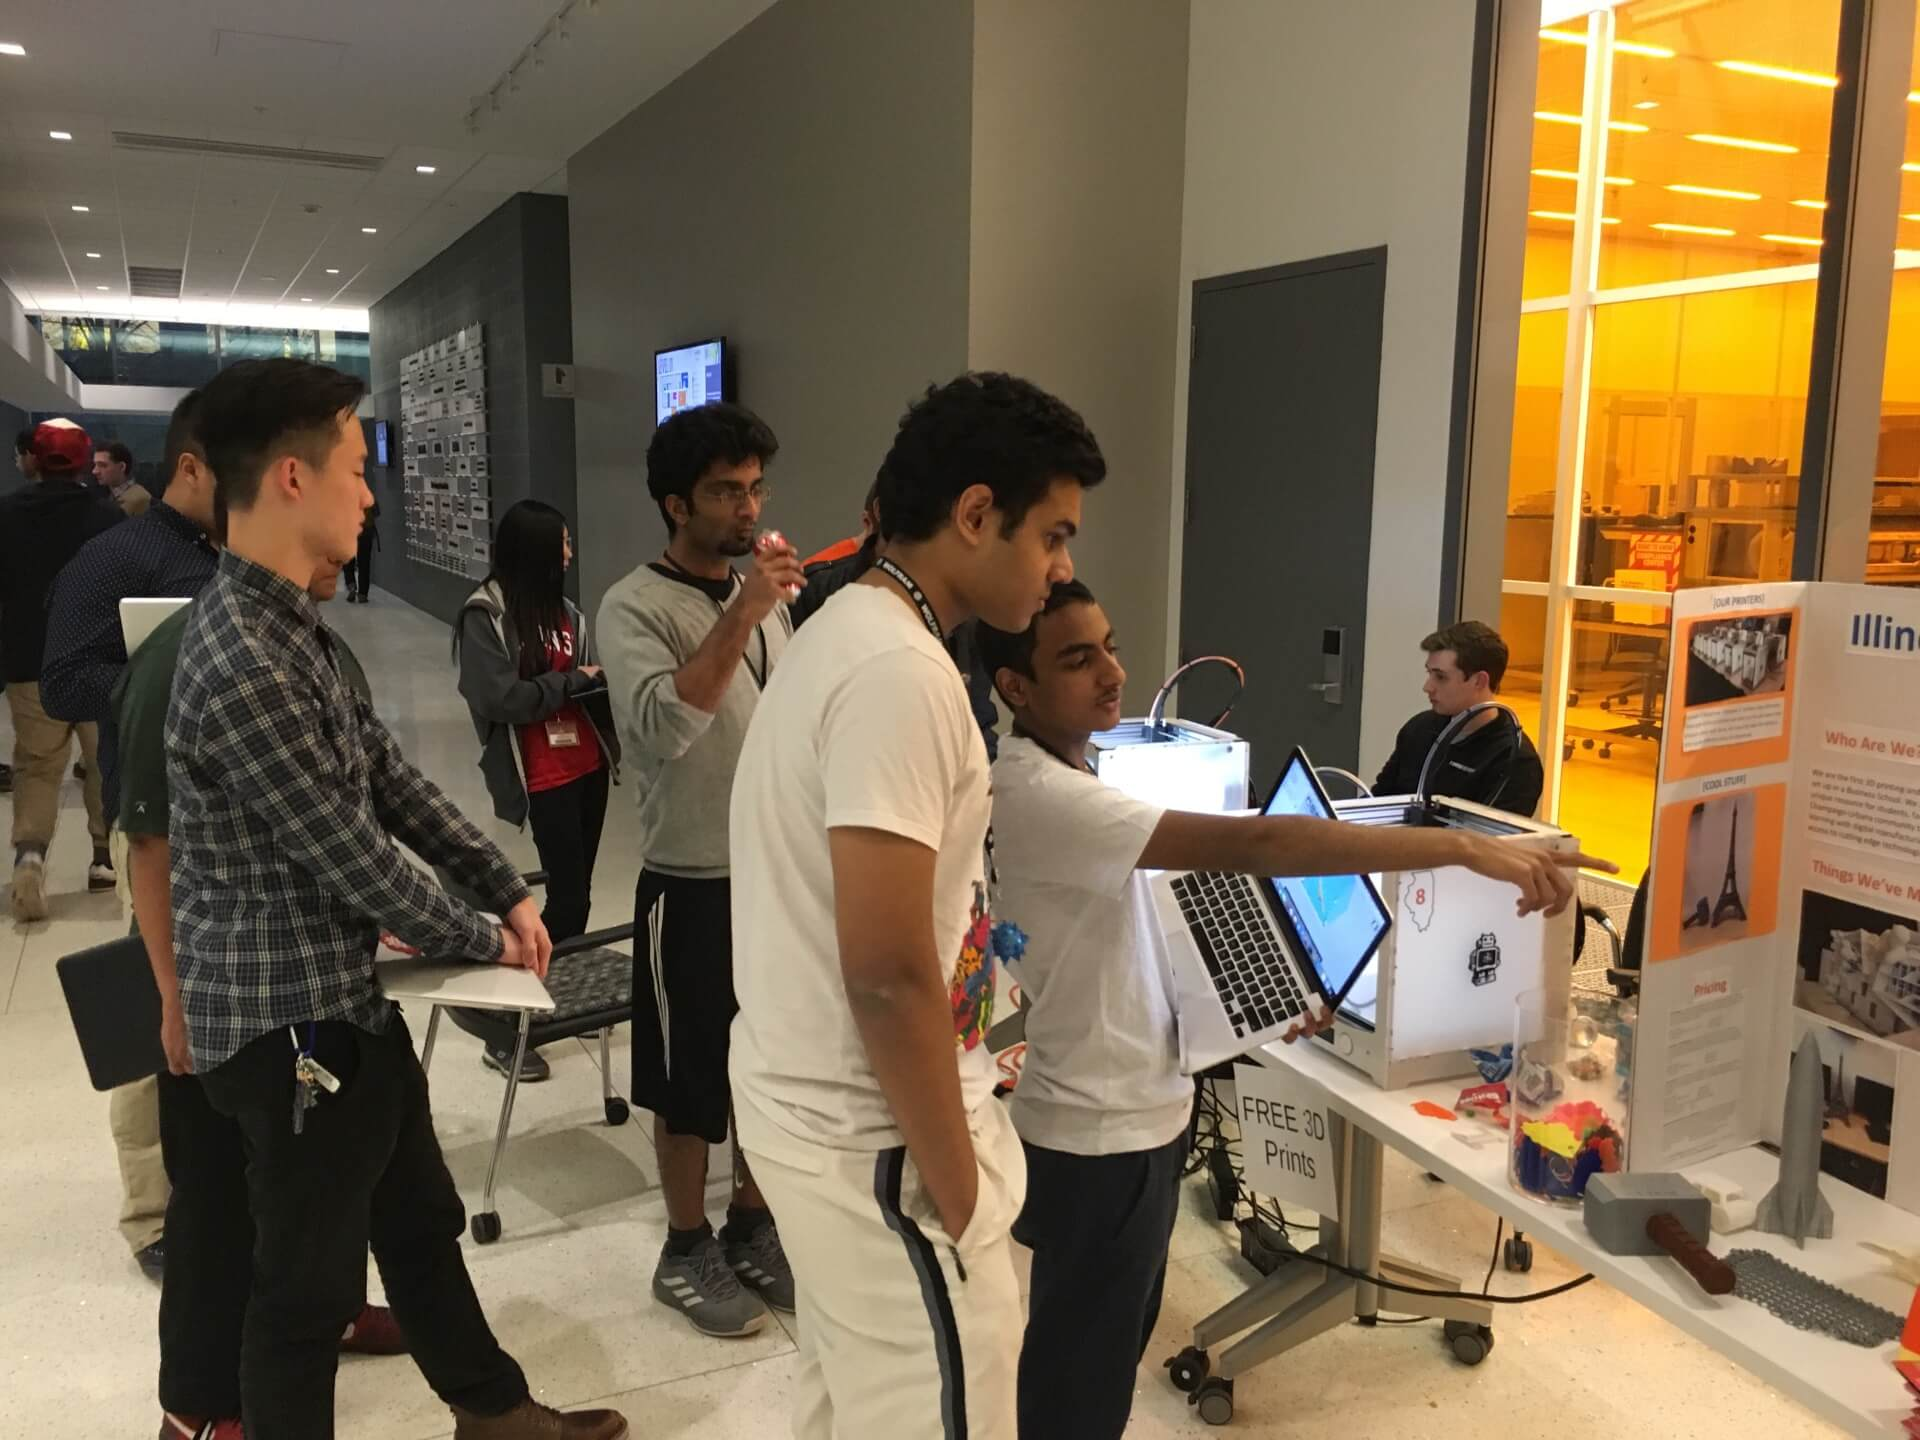 Hackers learning about 3DPrinting